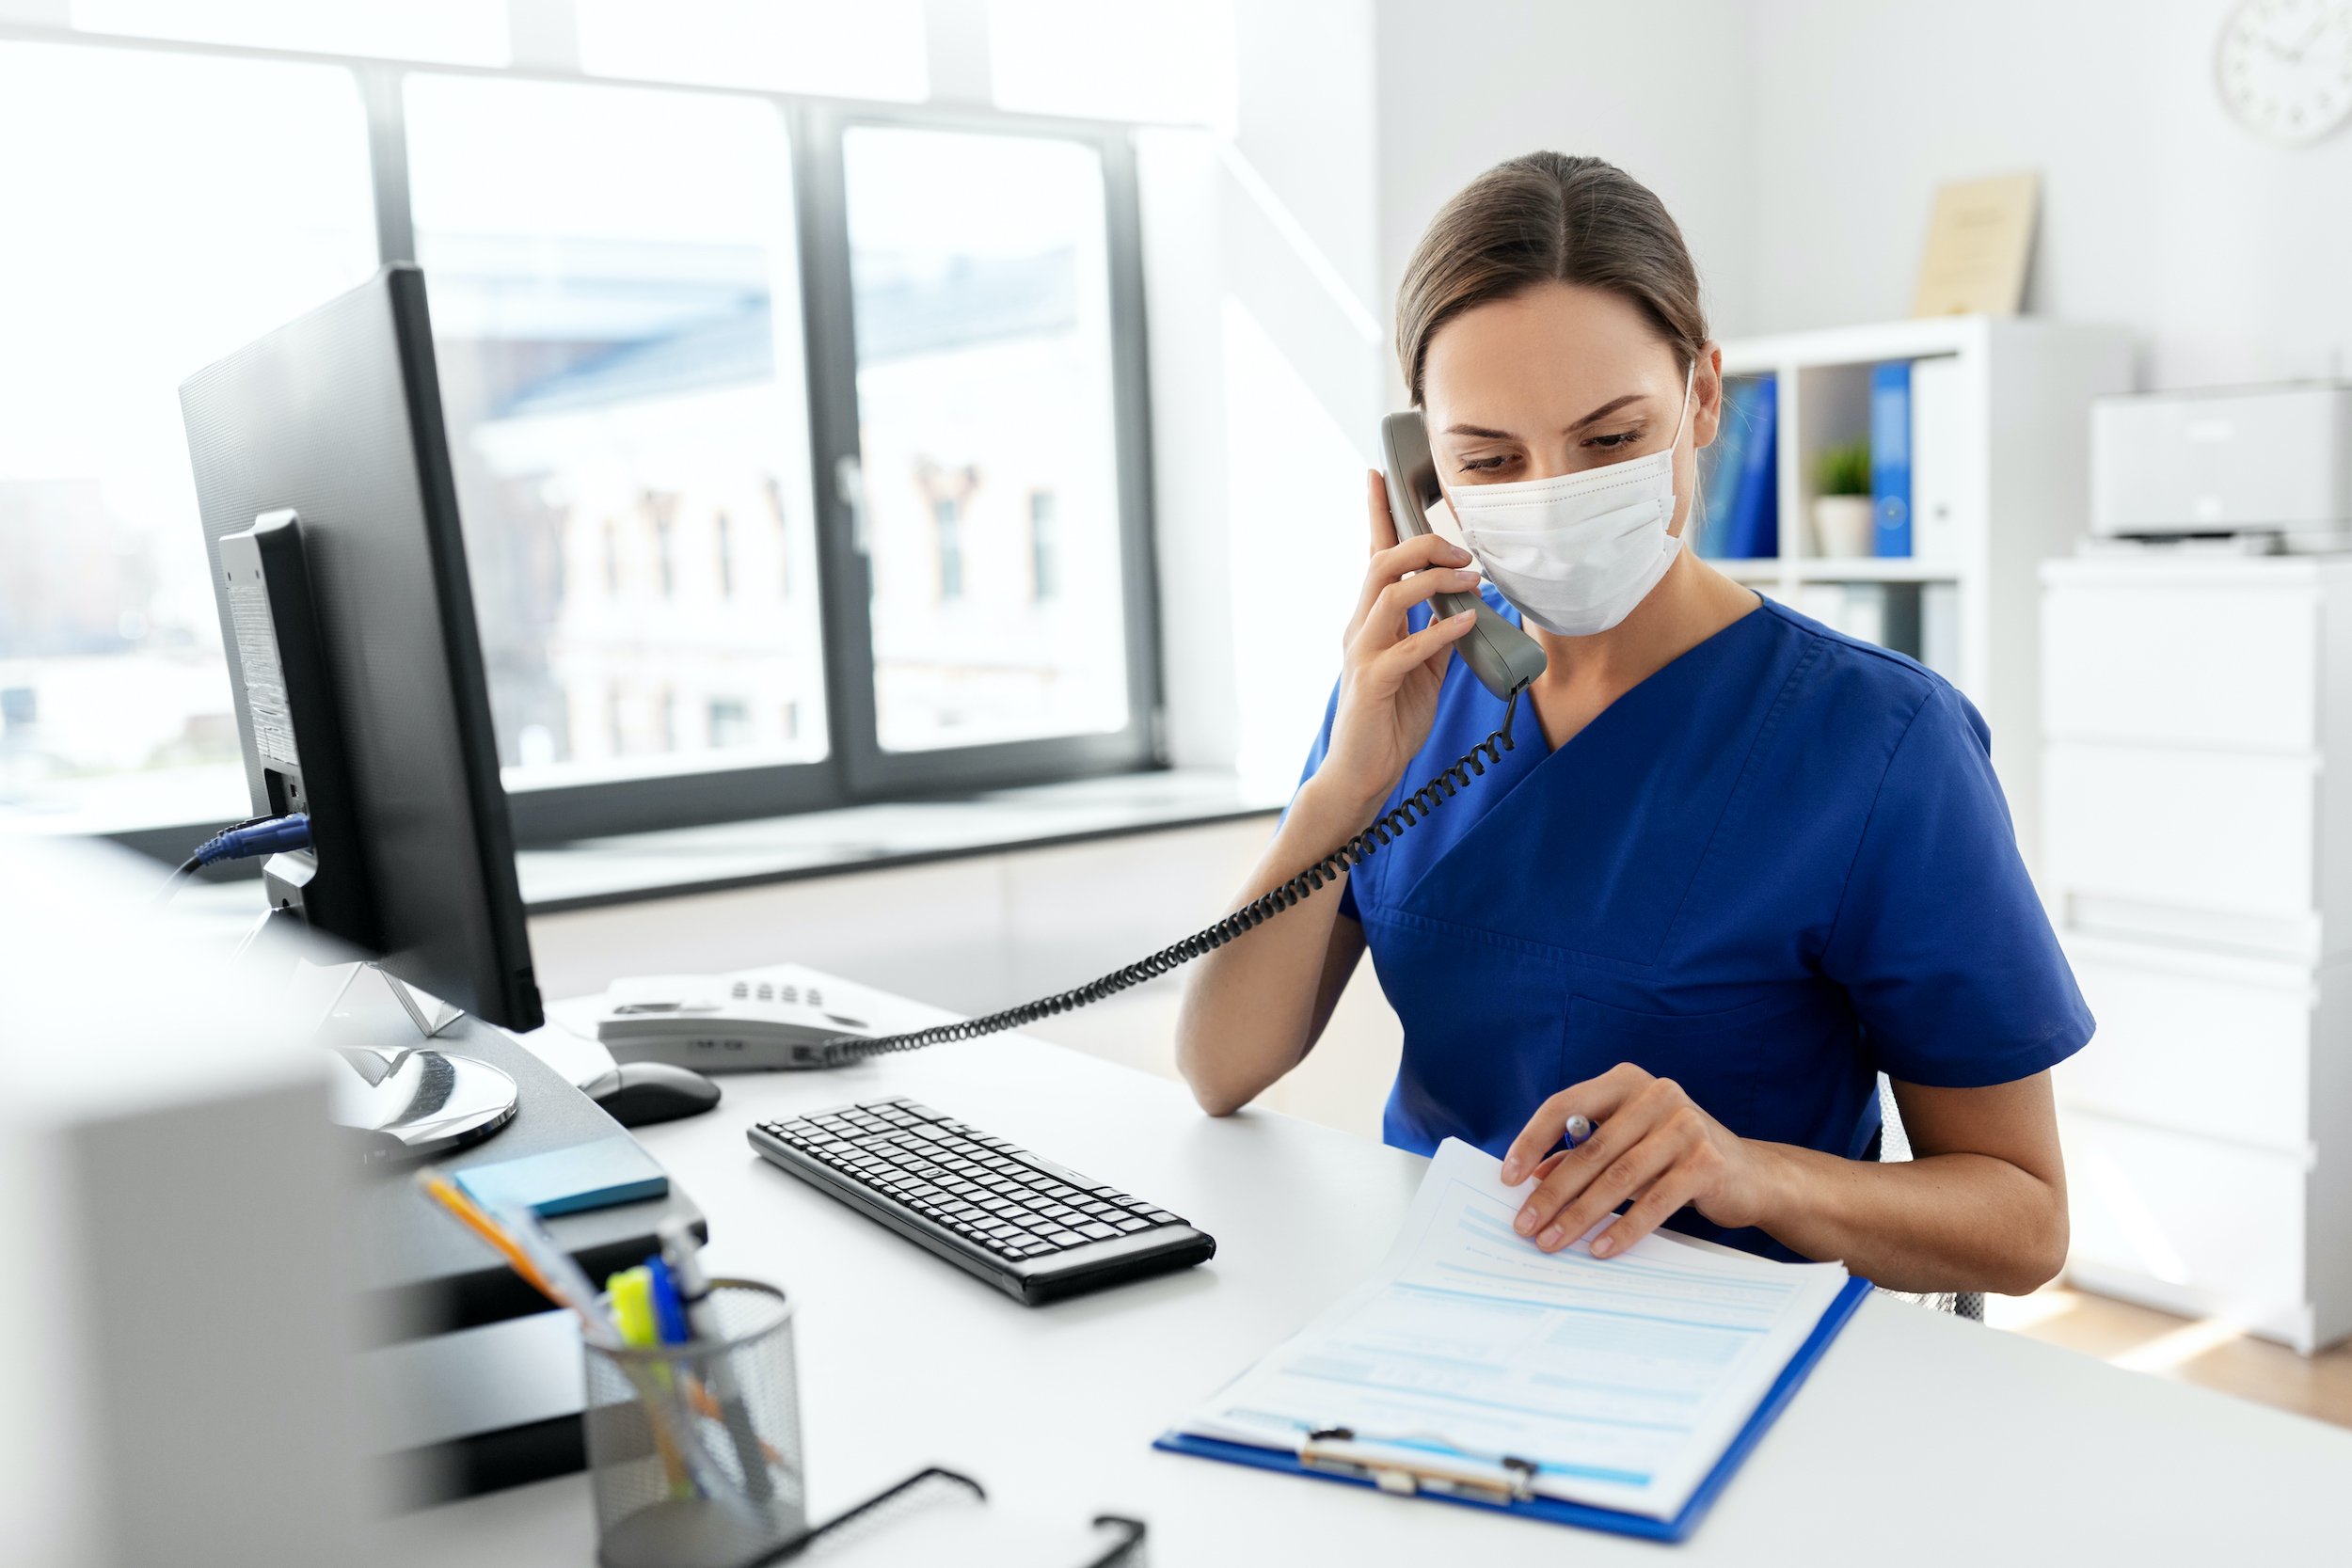 Study: Clinical Support Staff Burnout Linked to Patient Communication Challenges